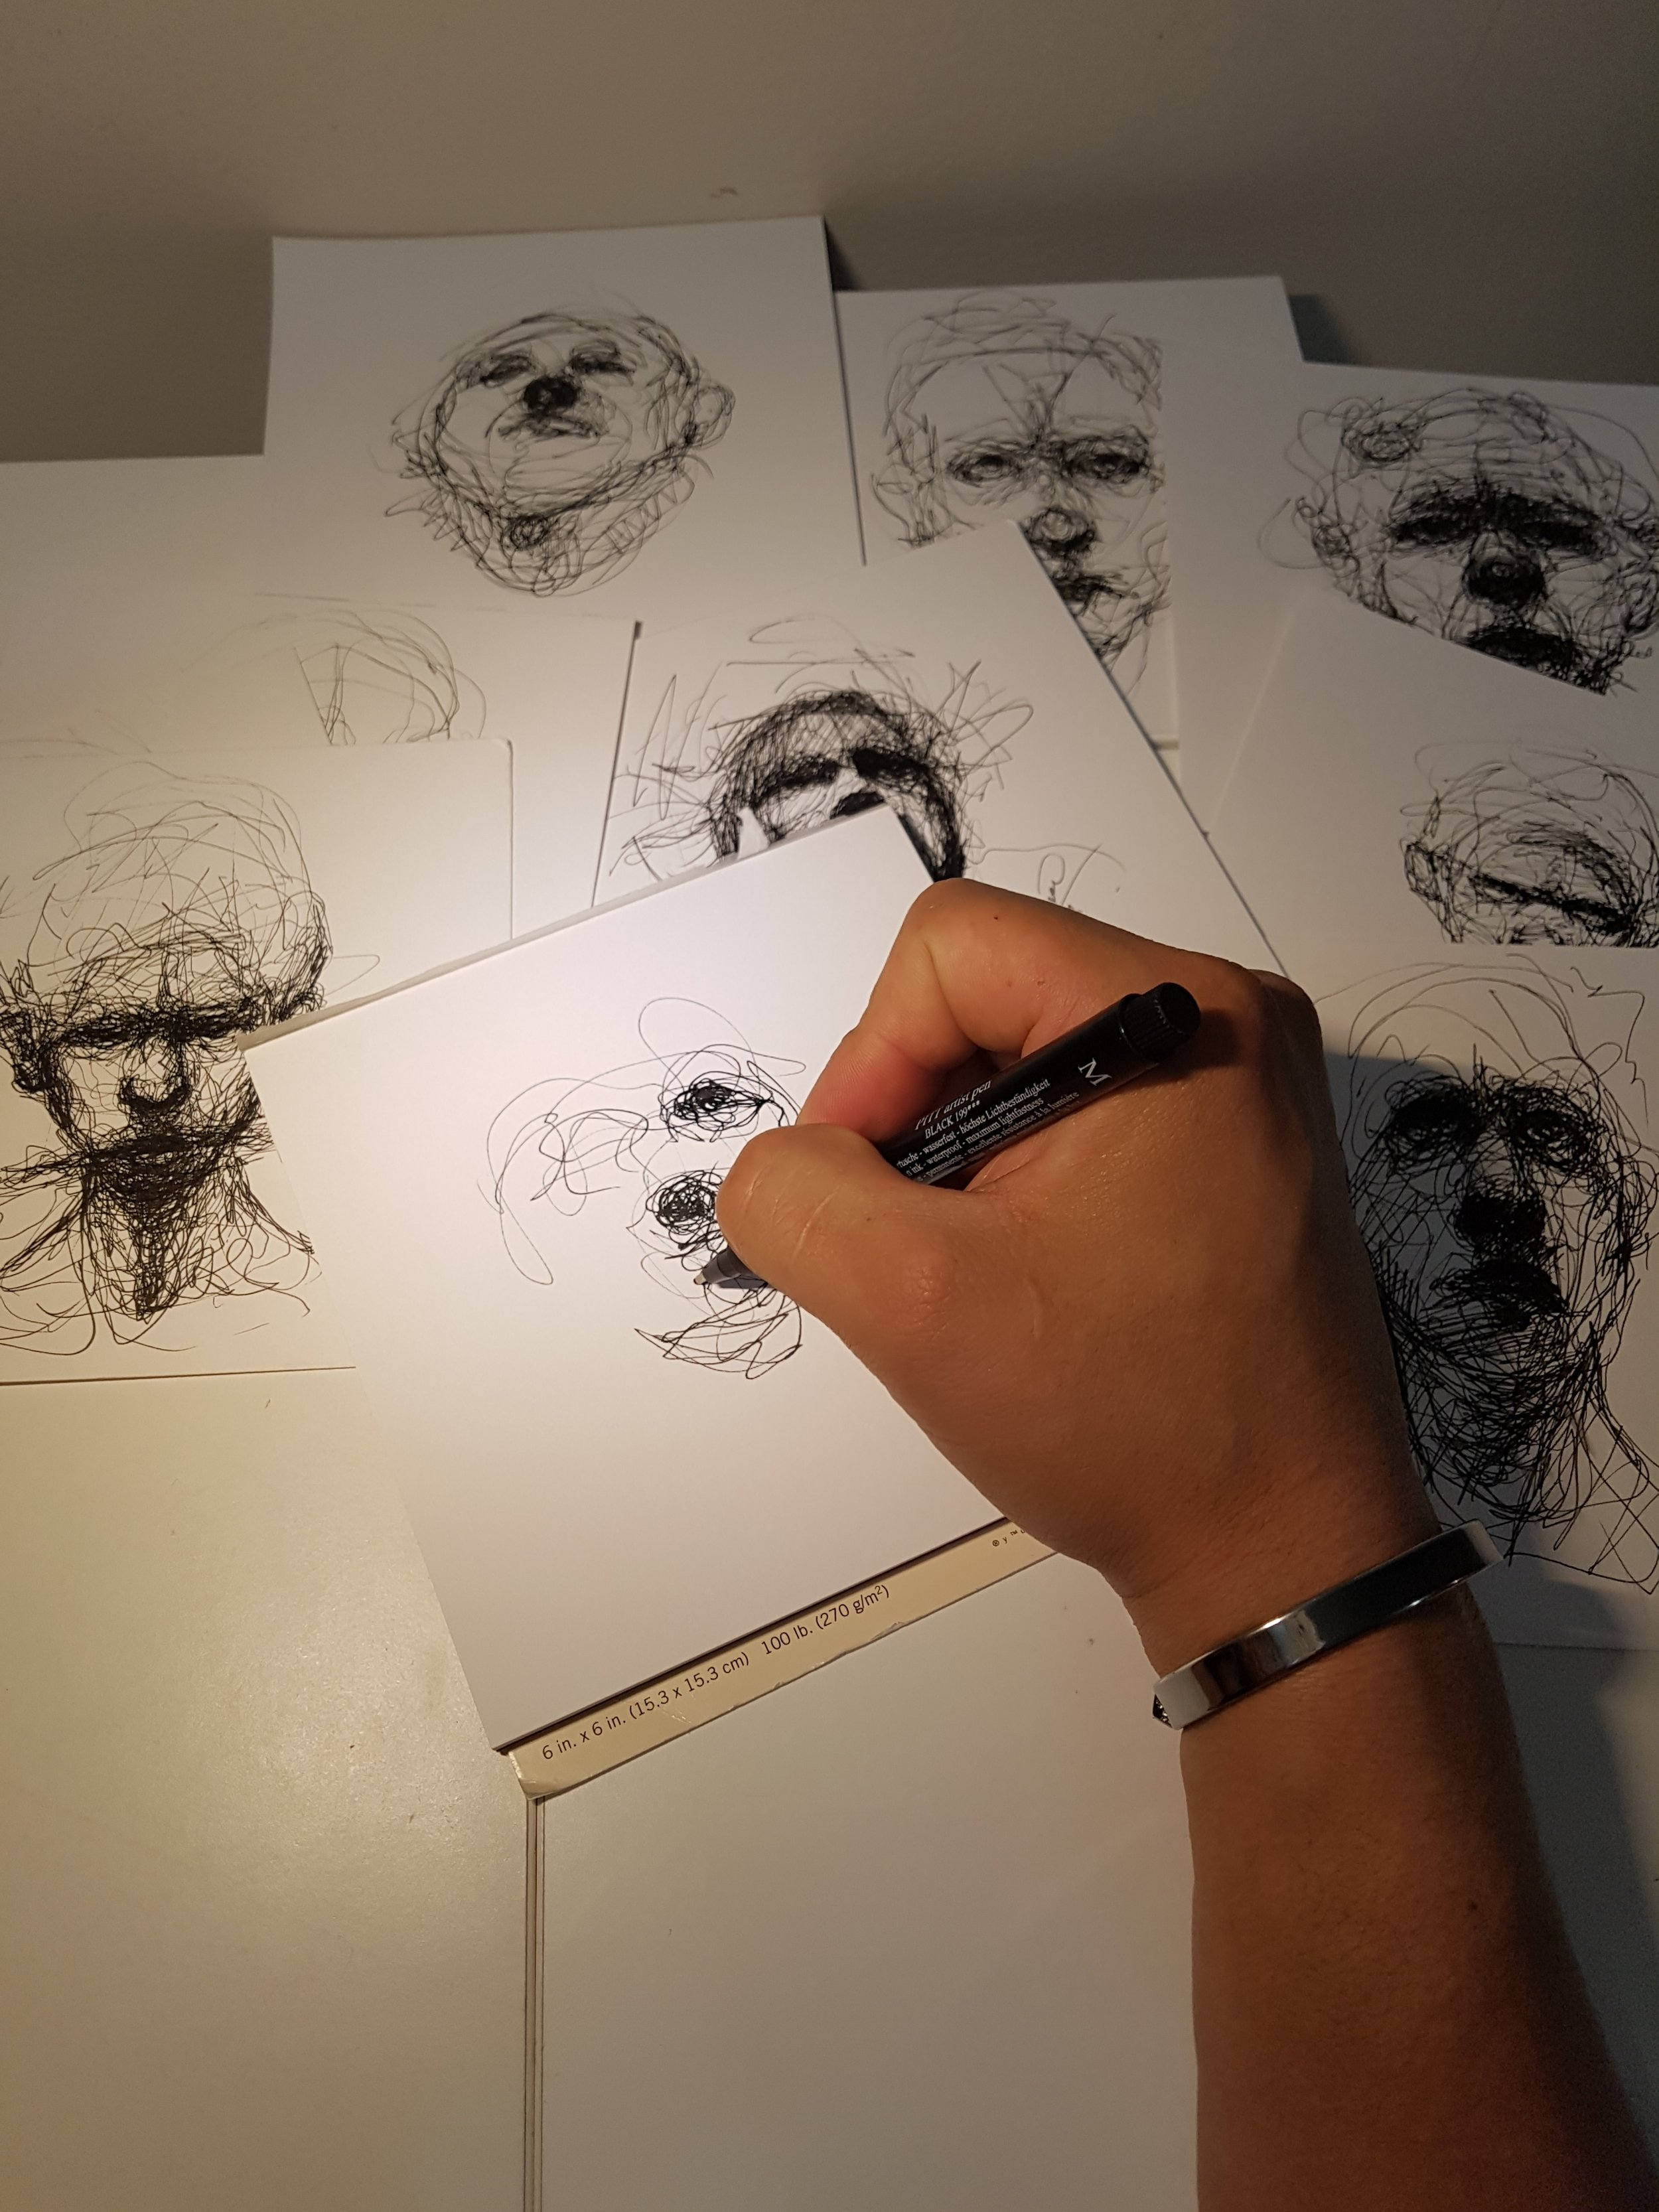 Sketching some portraits. Artist's life.